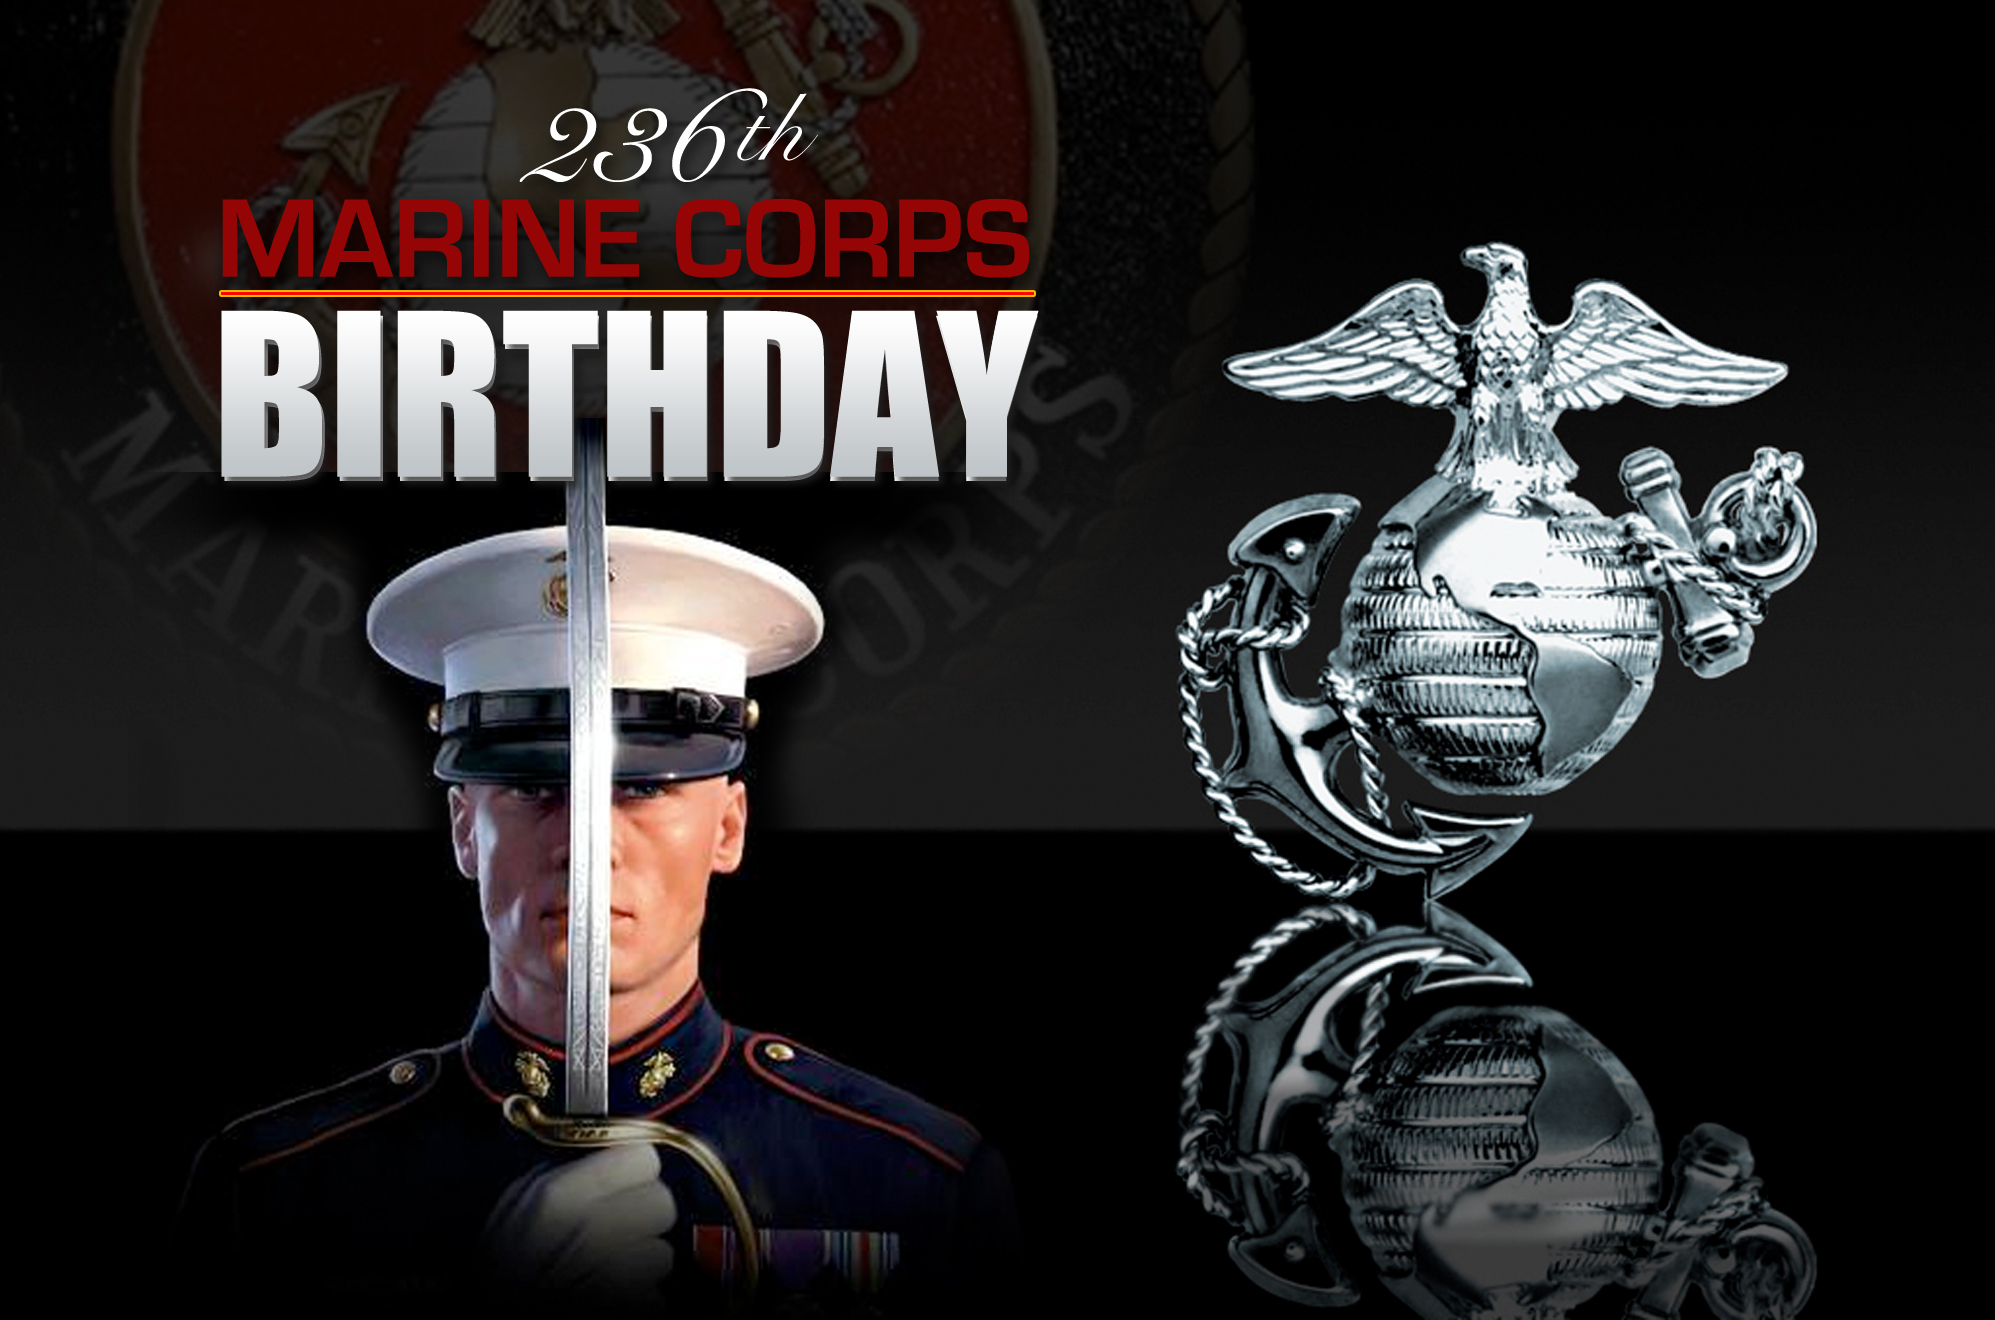 2018 marine corps birthday message ; 111109-F-PA987-005